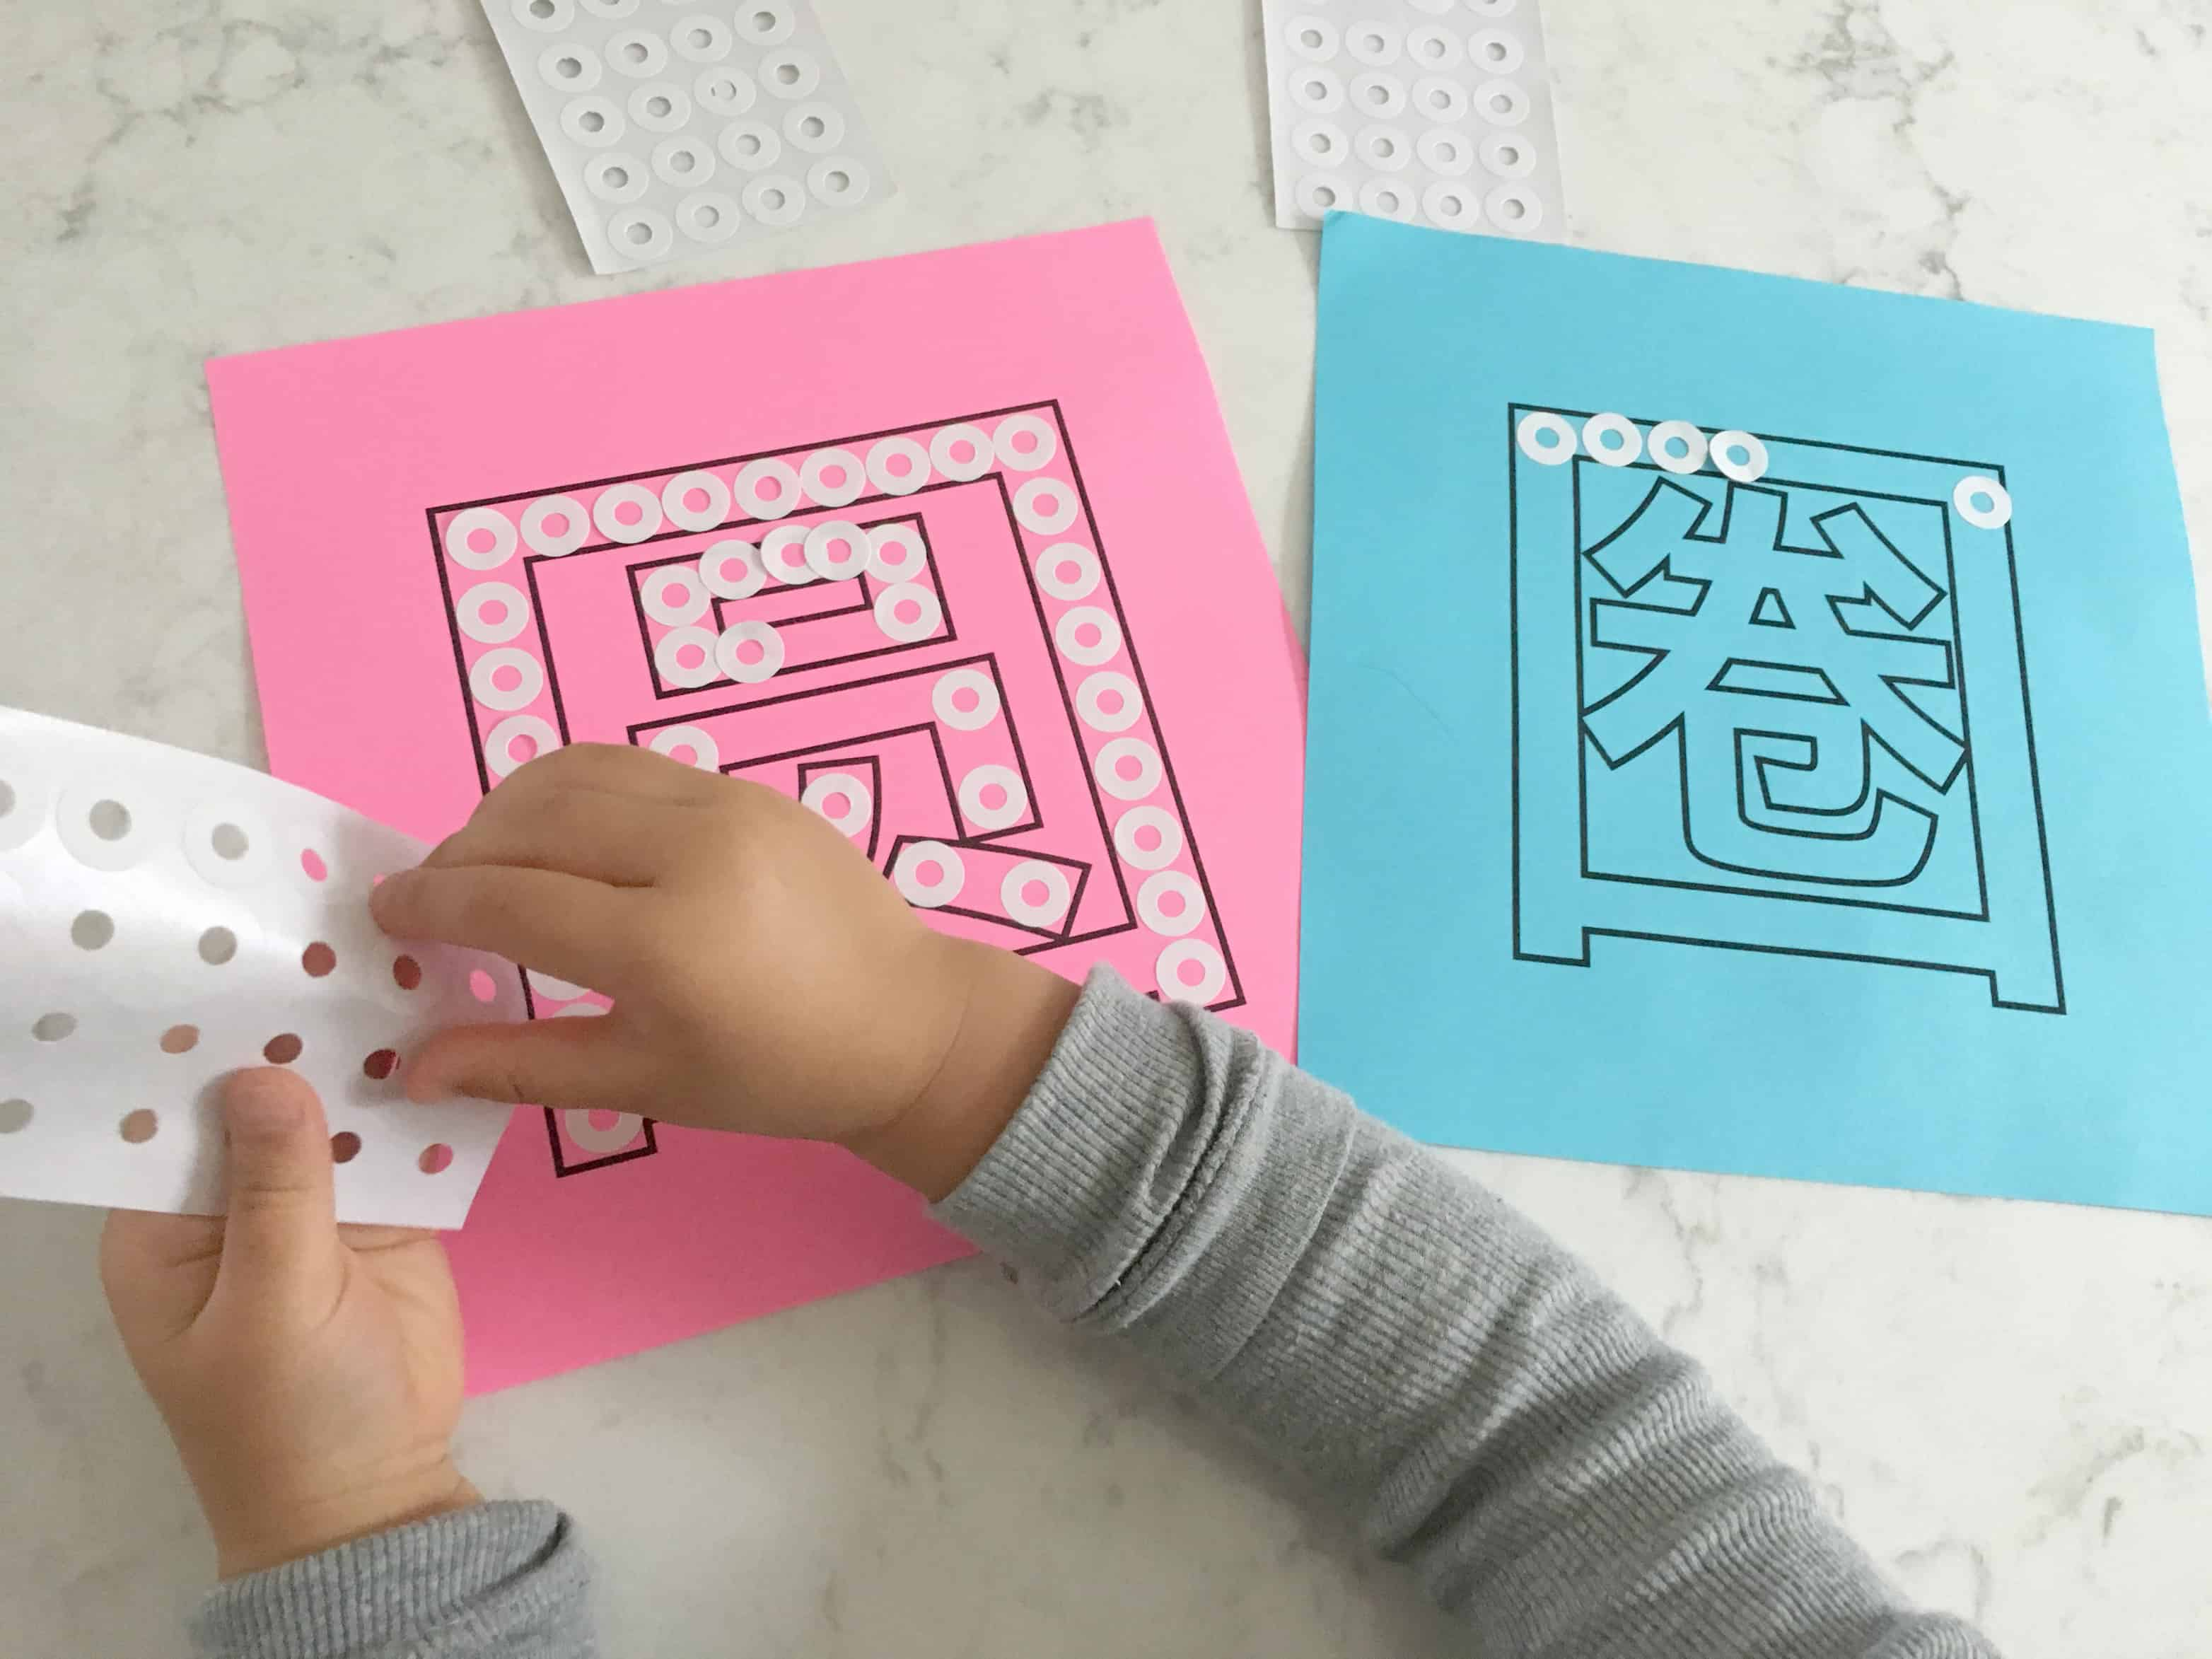 Learn About Circles with Hole Reinforcers! A Fun Chinese Learning Activity for Kids!